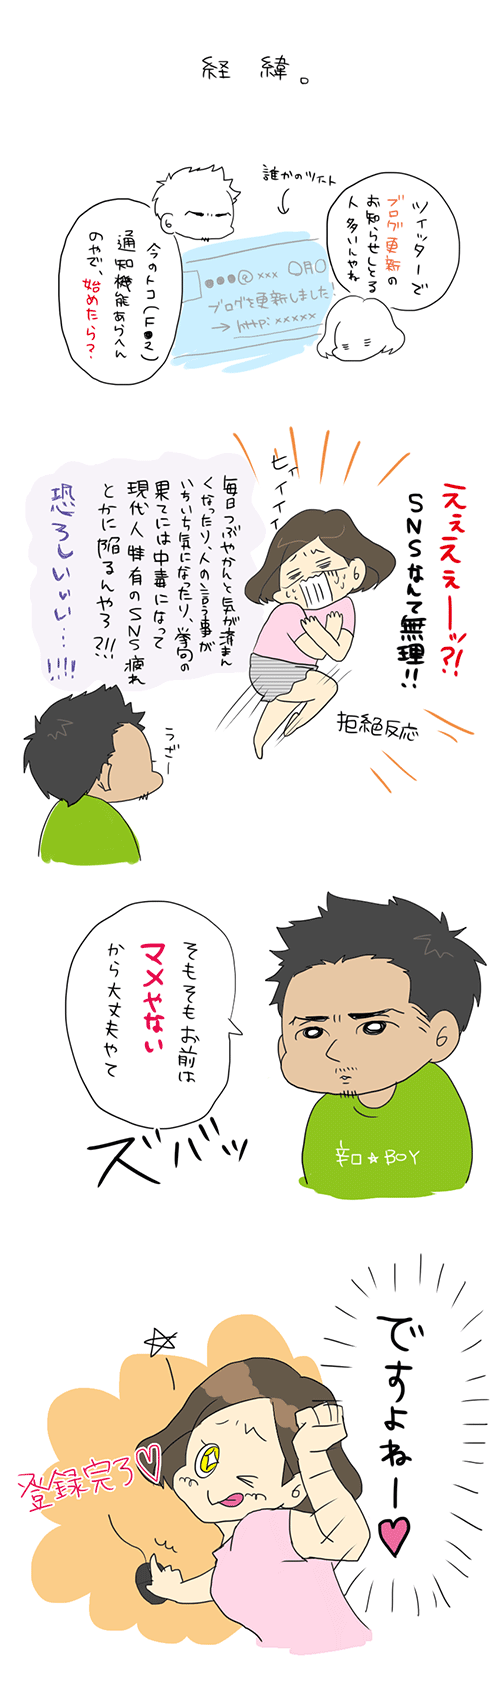 20140917_2.png